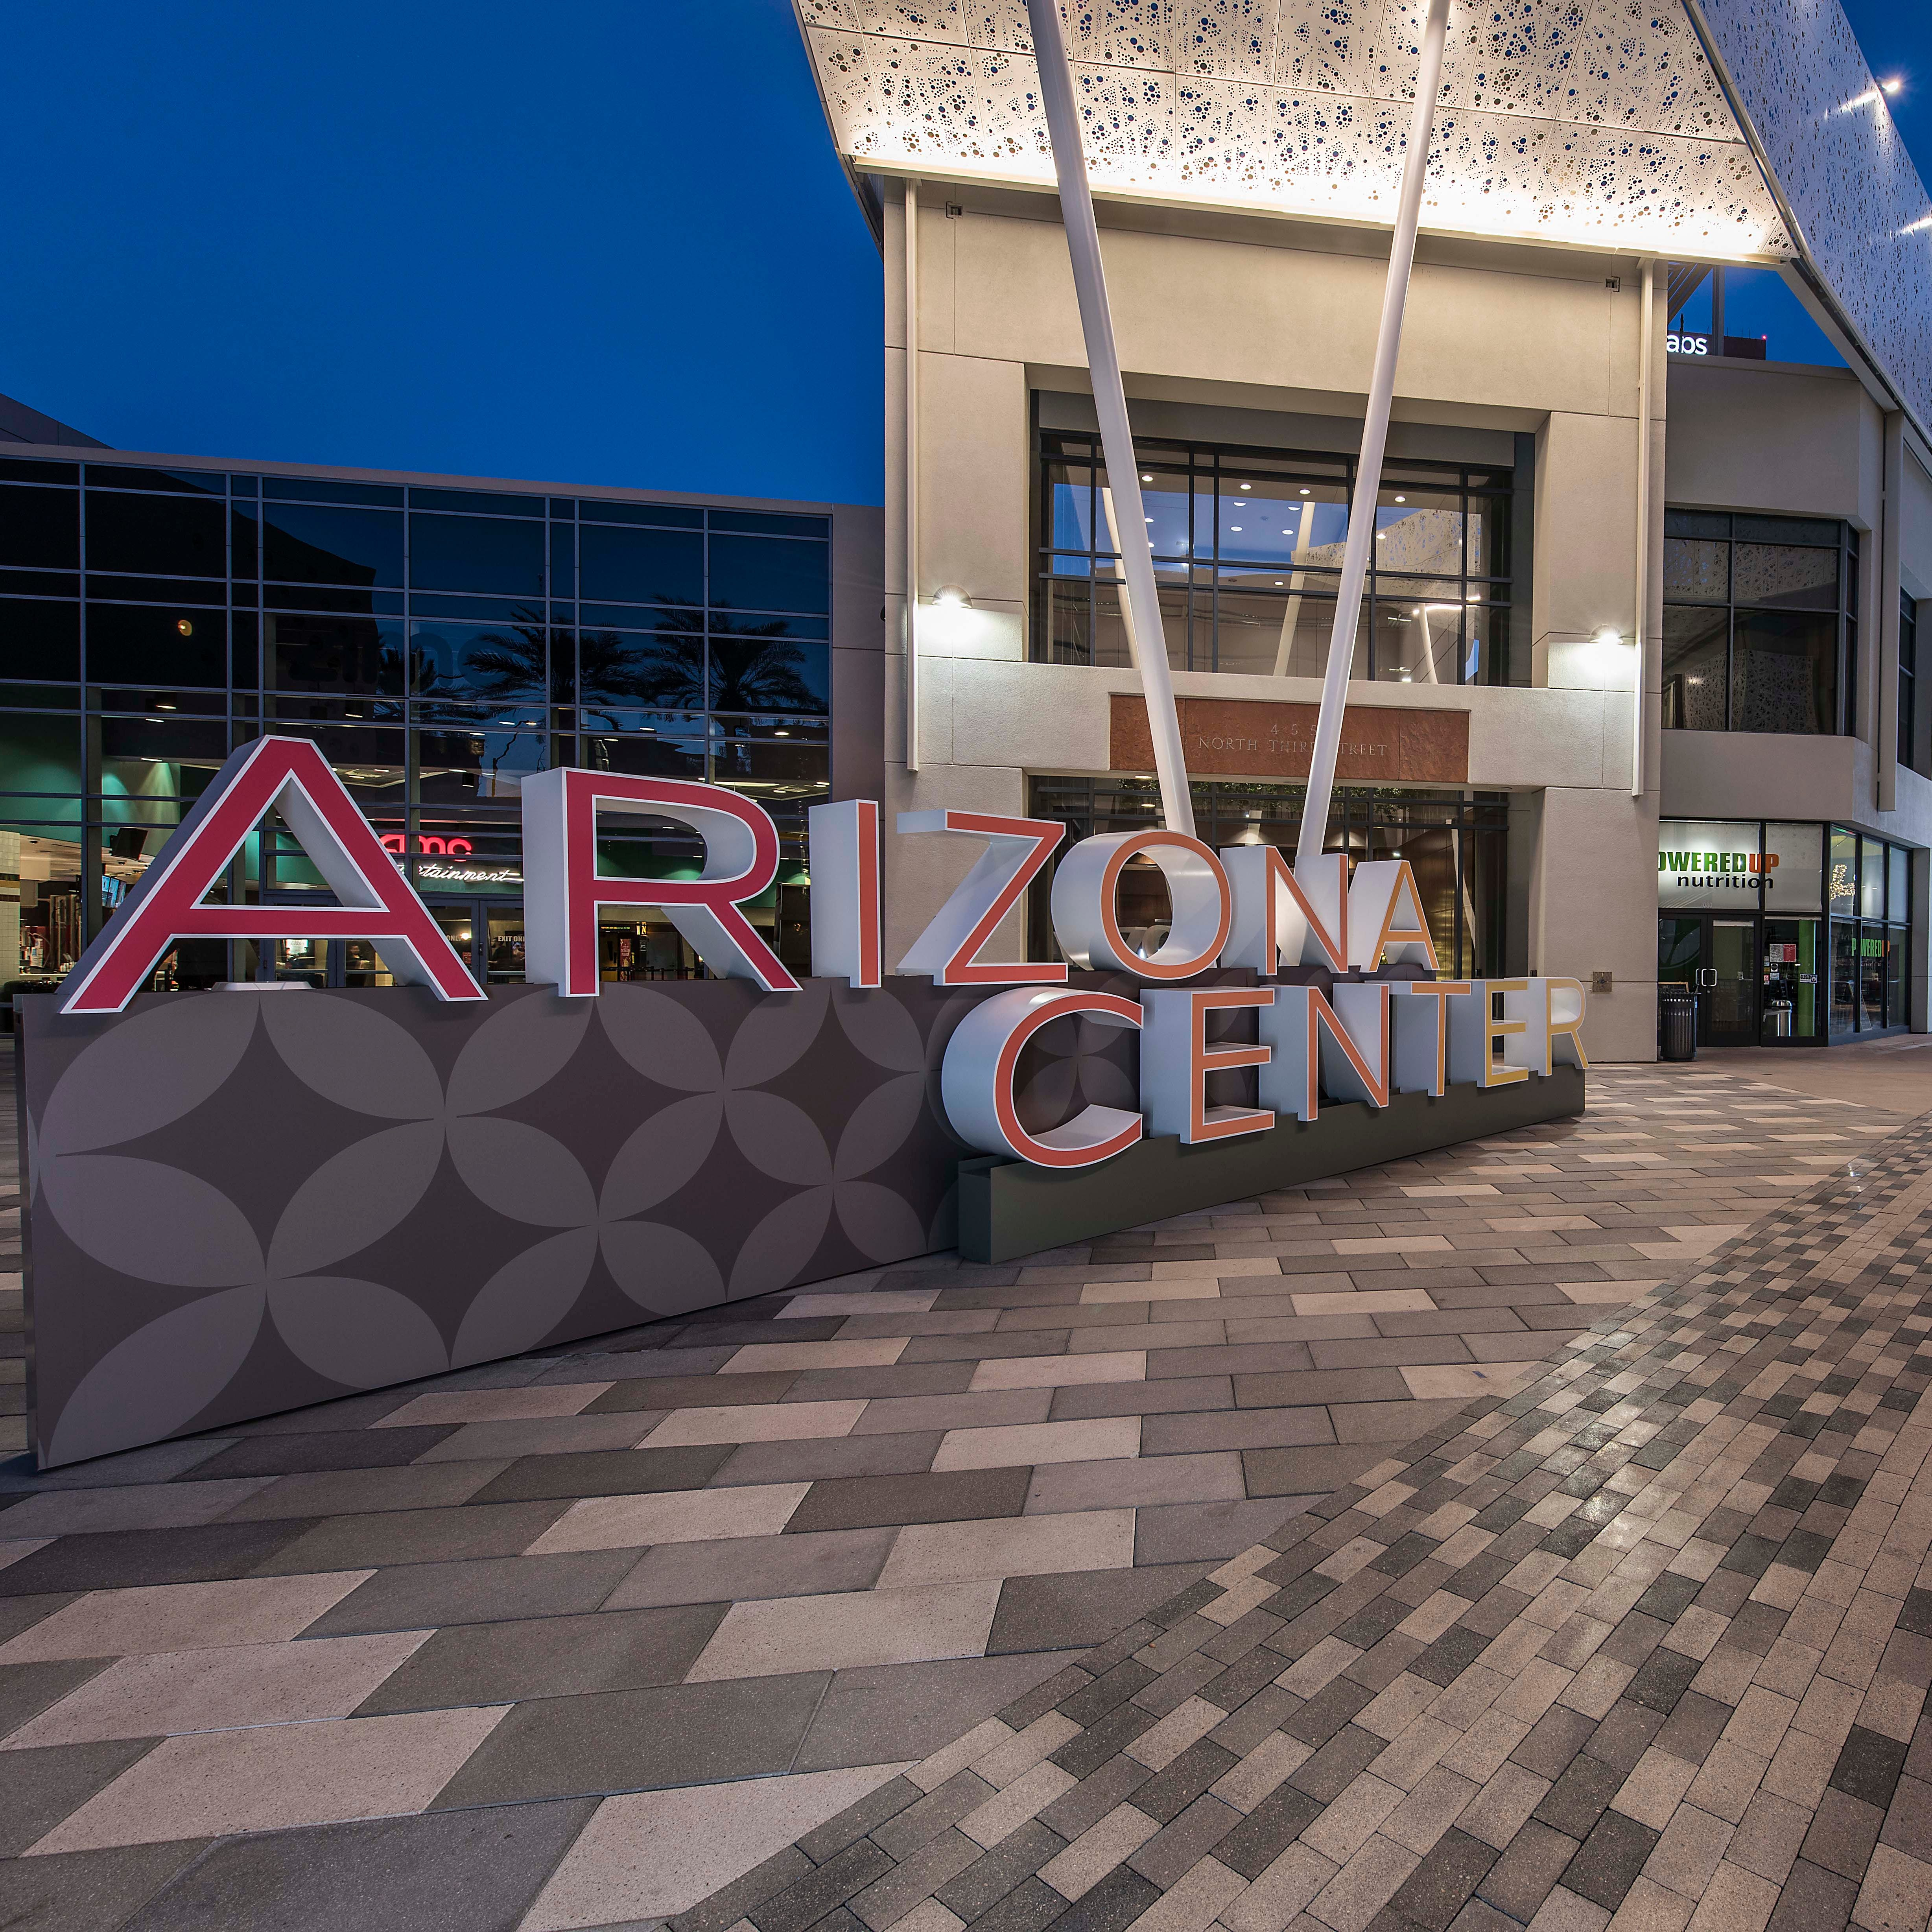 Downtown Phoenix's Arizona Center: Its history and future development